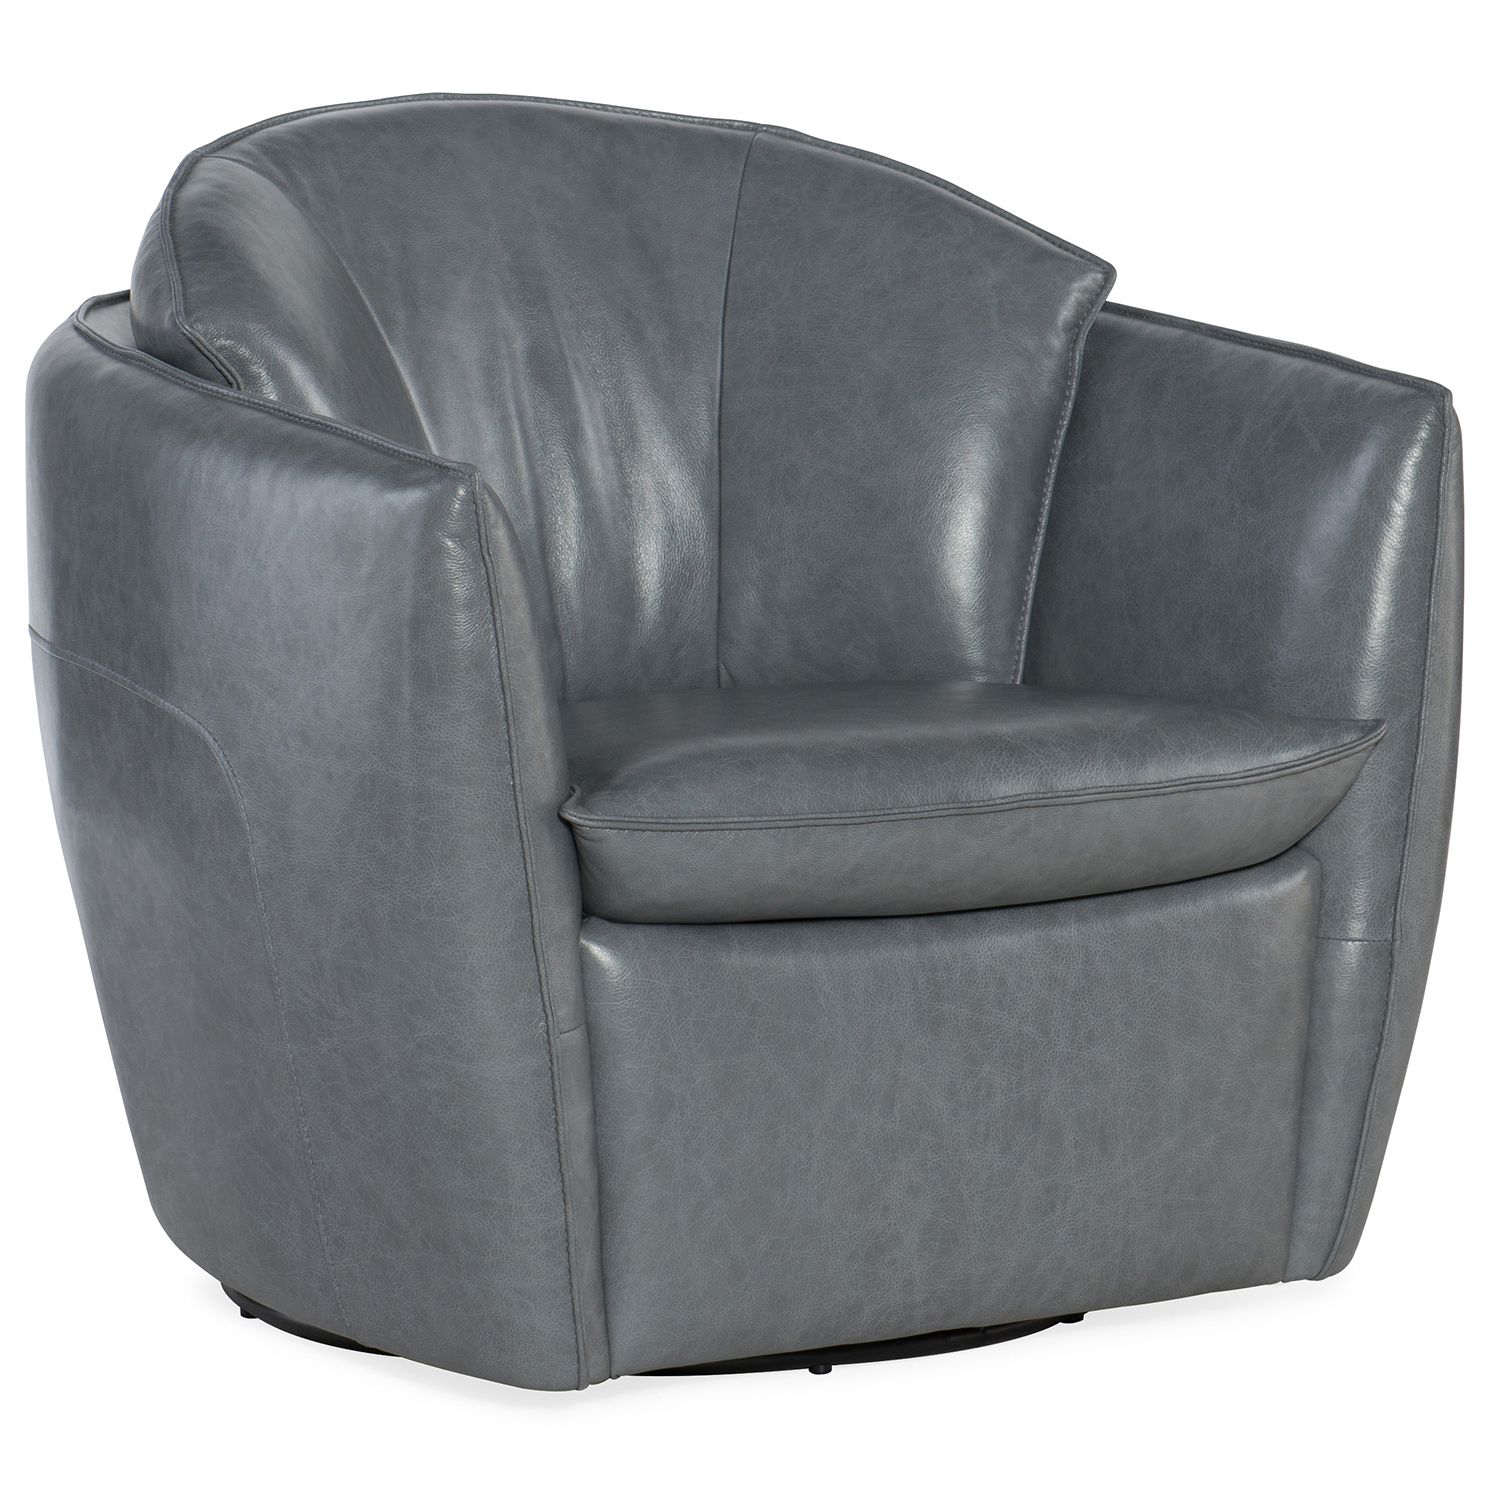 Hooker Furniture Vogue Vintage Dark Gray Swivel Chair Cc213 Sw 096 Inside Dark Grey Swivel Chairs (Photo 7 of 20)